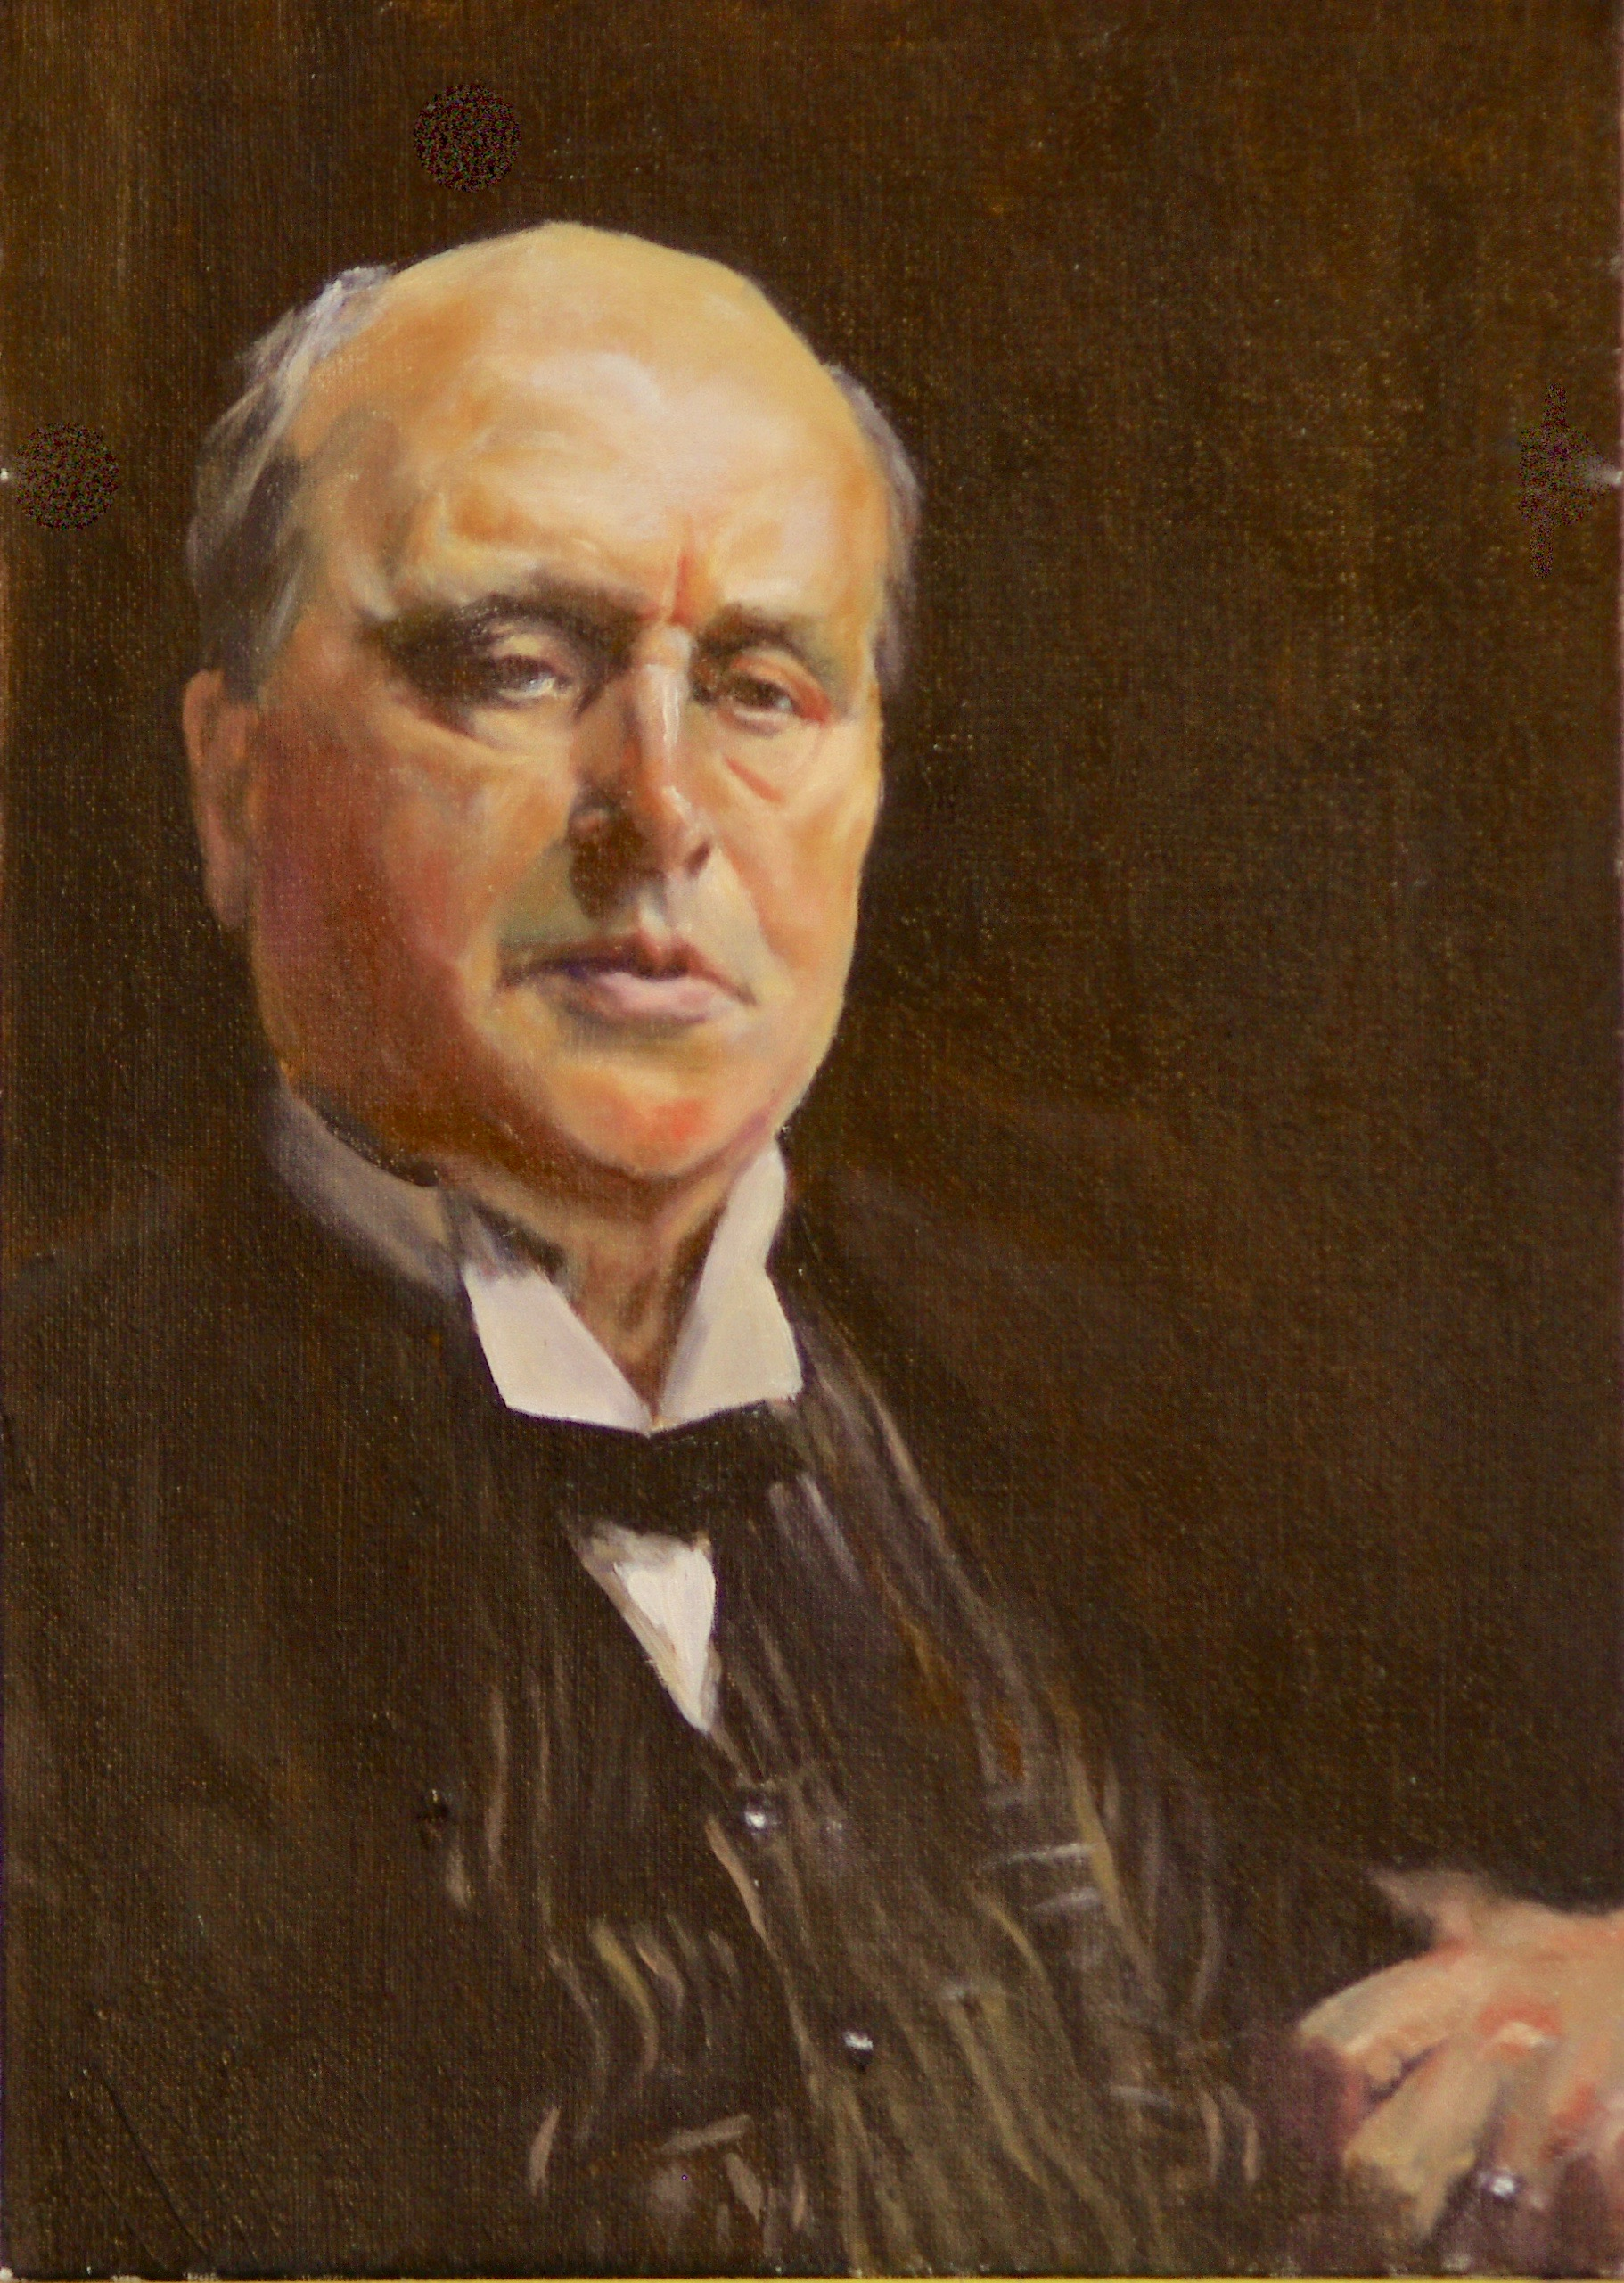 Reproduction of John Singer Sargent's painting of Henry James